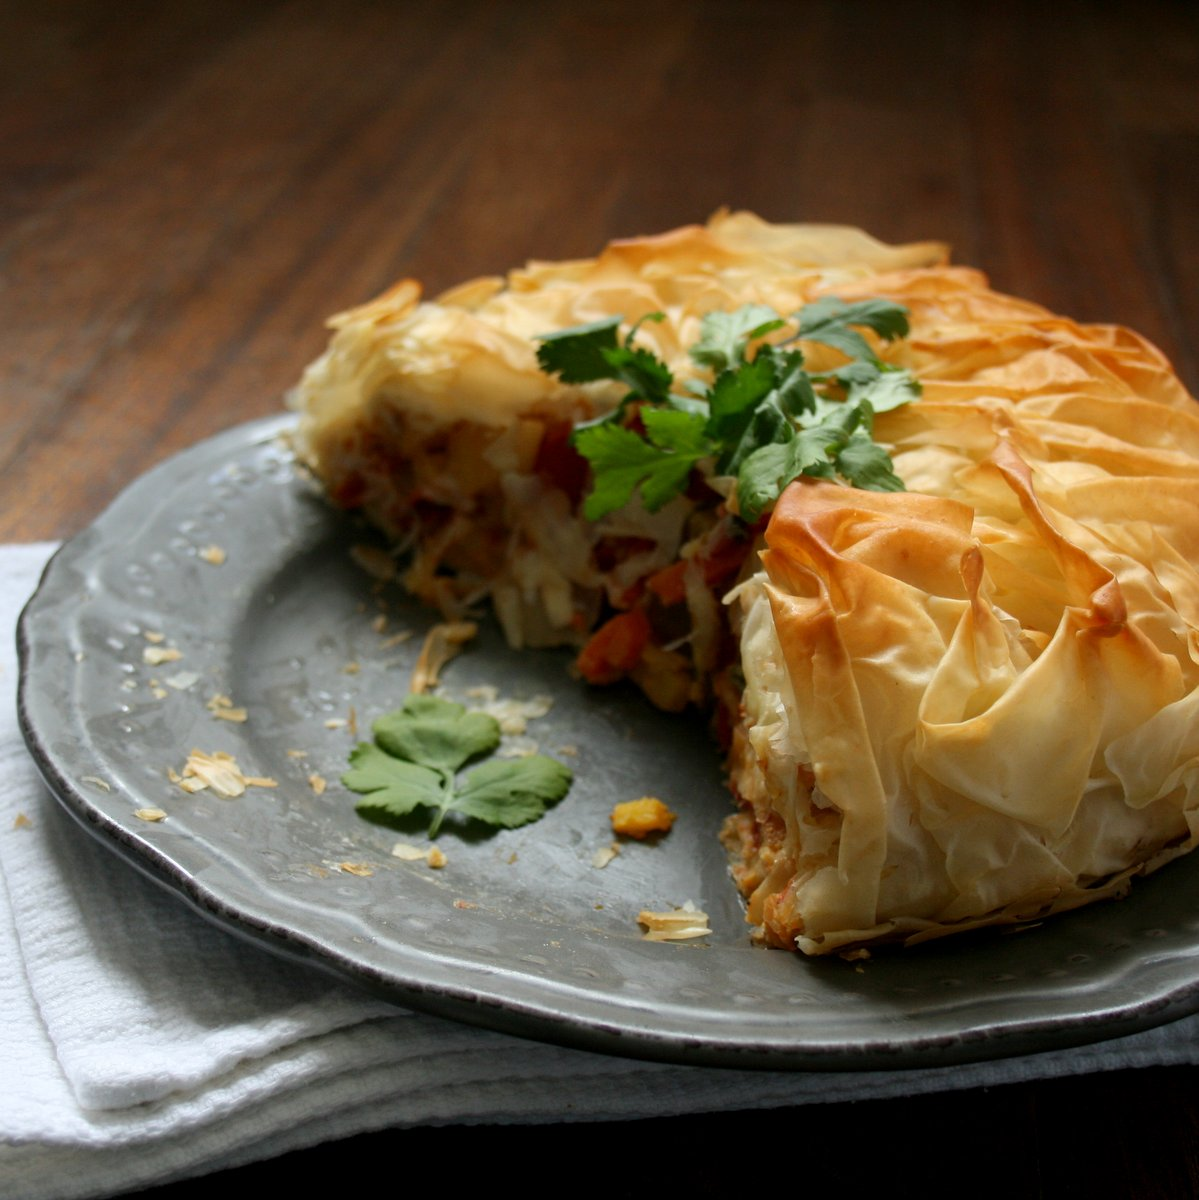 Cupcakes & Couscous: Roasted Thai Vegetable Pie